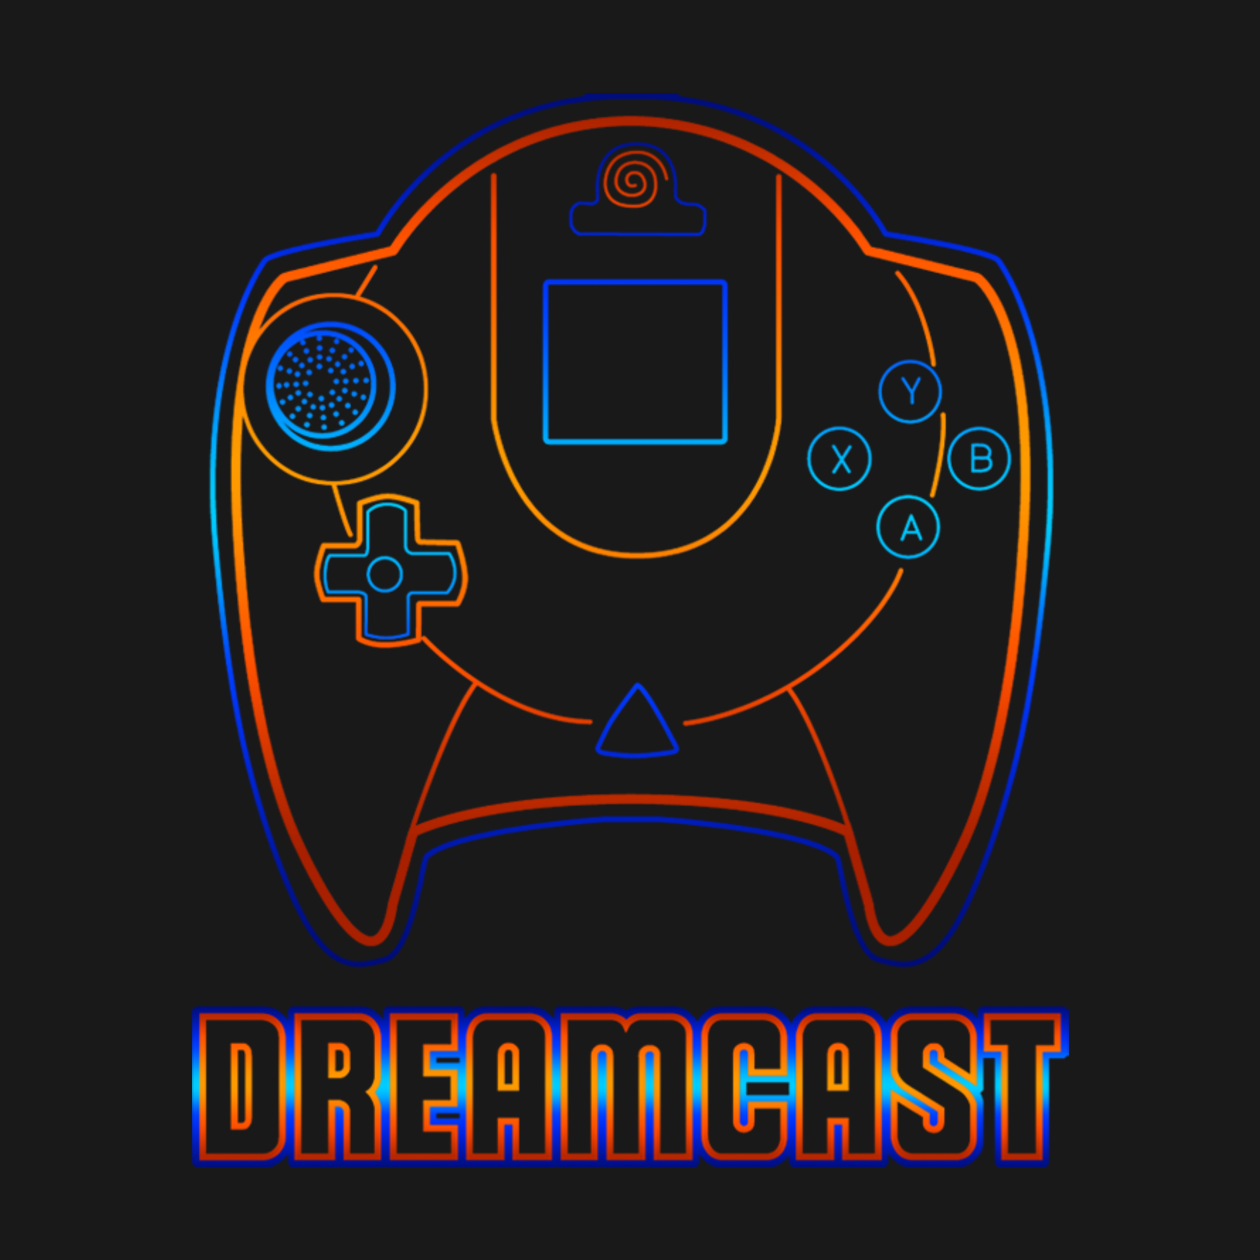 Dreamcast Outline By Spdy4 Geeky Wallpaper Retro Arcade Spiderman Art